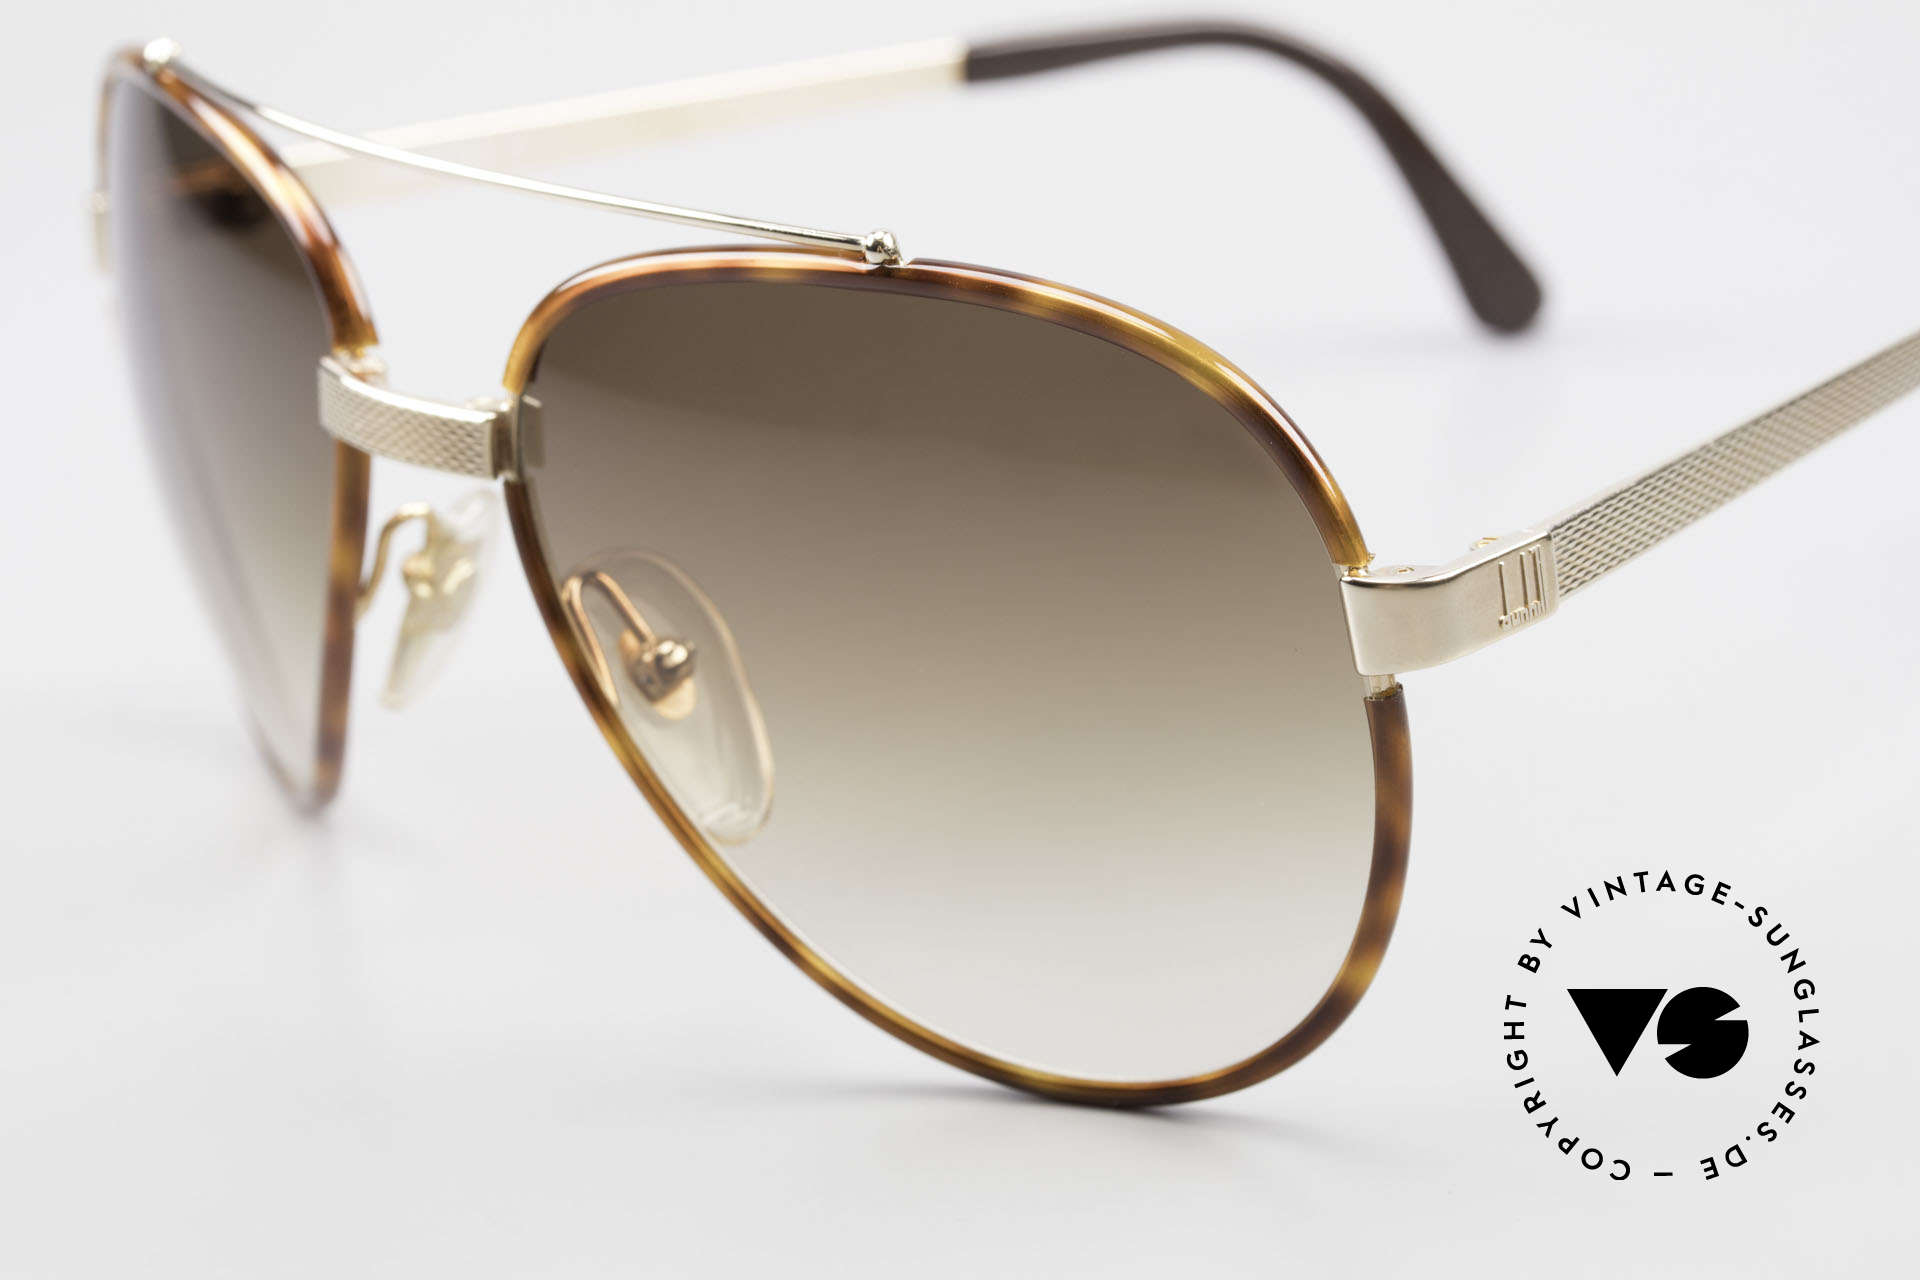 Dunhill 6023 80's Sunglasses Luxury Aviator, simply, a high-class and elegant vintage classic, Made for Men